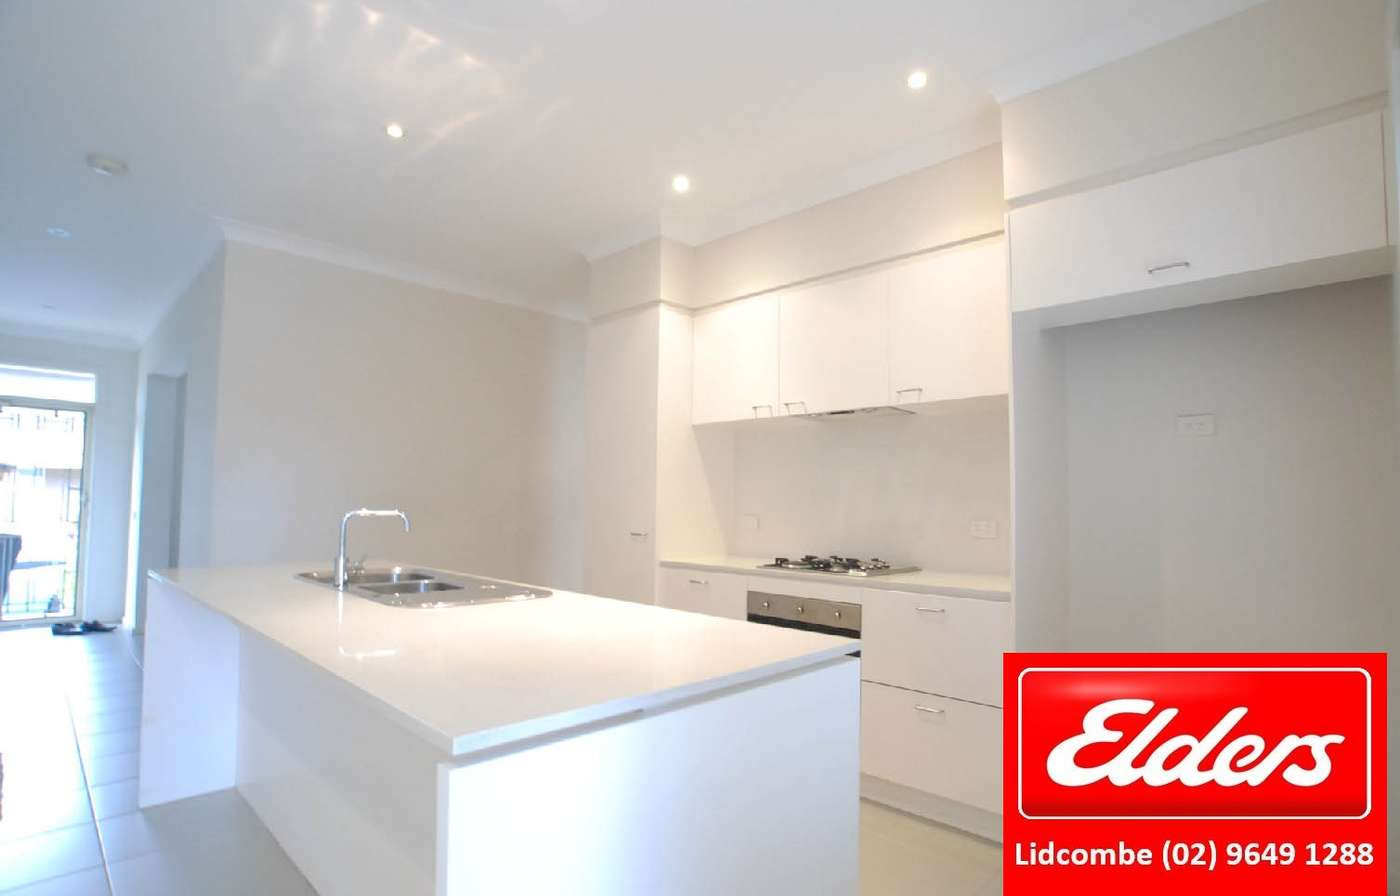 Main view of Homely house listing, 8 Jacaranda Ave, Lidcombe, NSW 2141